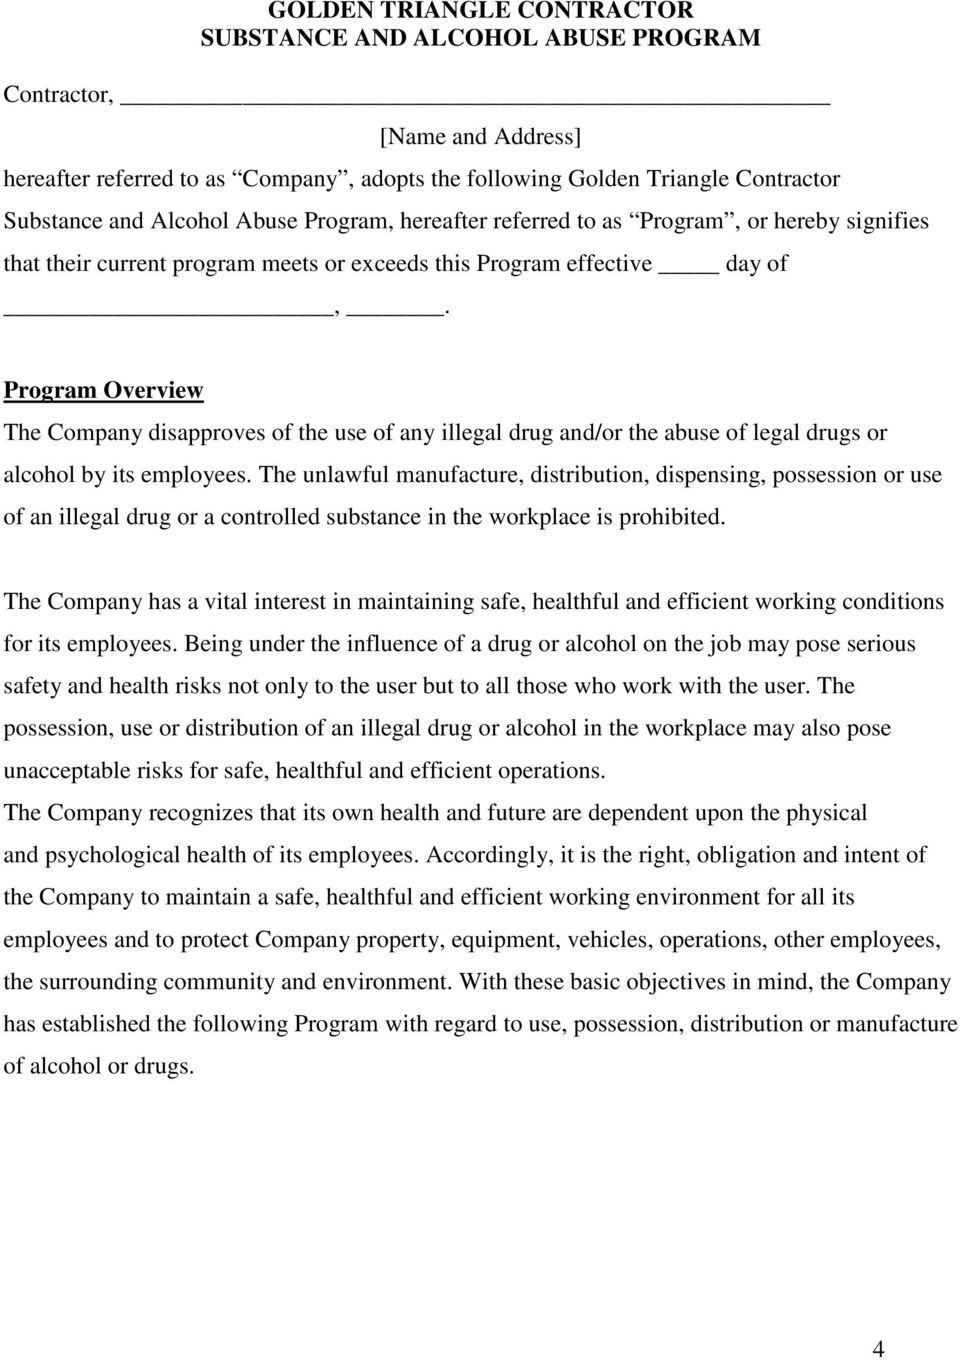 Program Overview The Company disapproves of the use of any illegal drug and/or the abuse of legal drugs or alcohol by its employees.